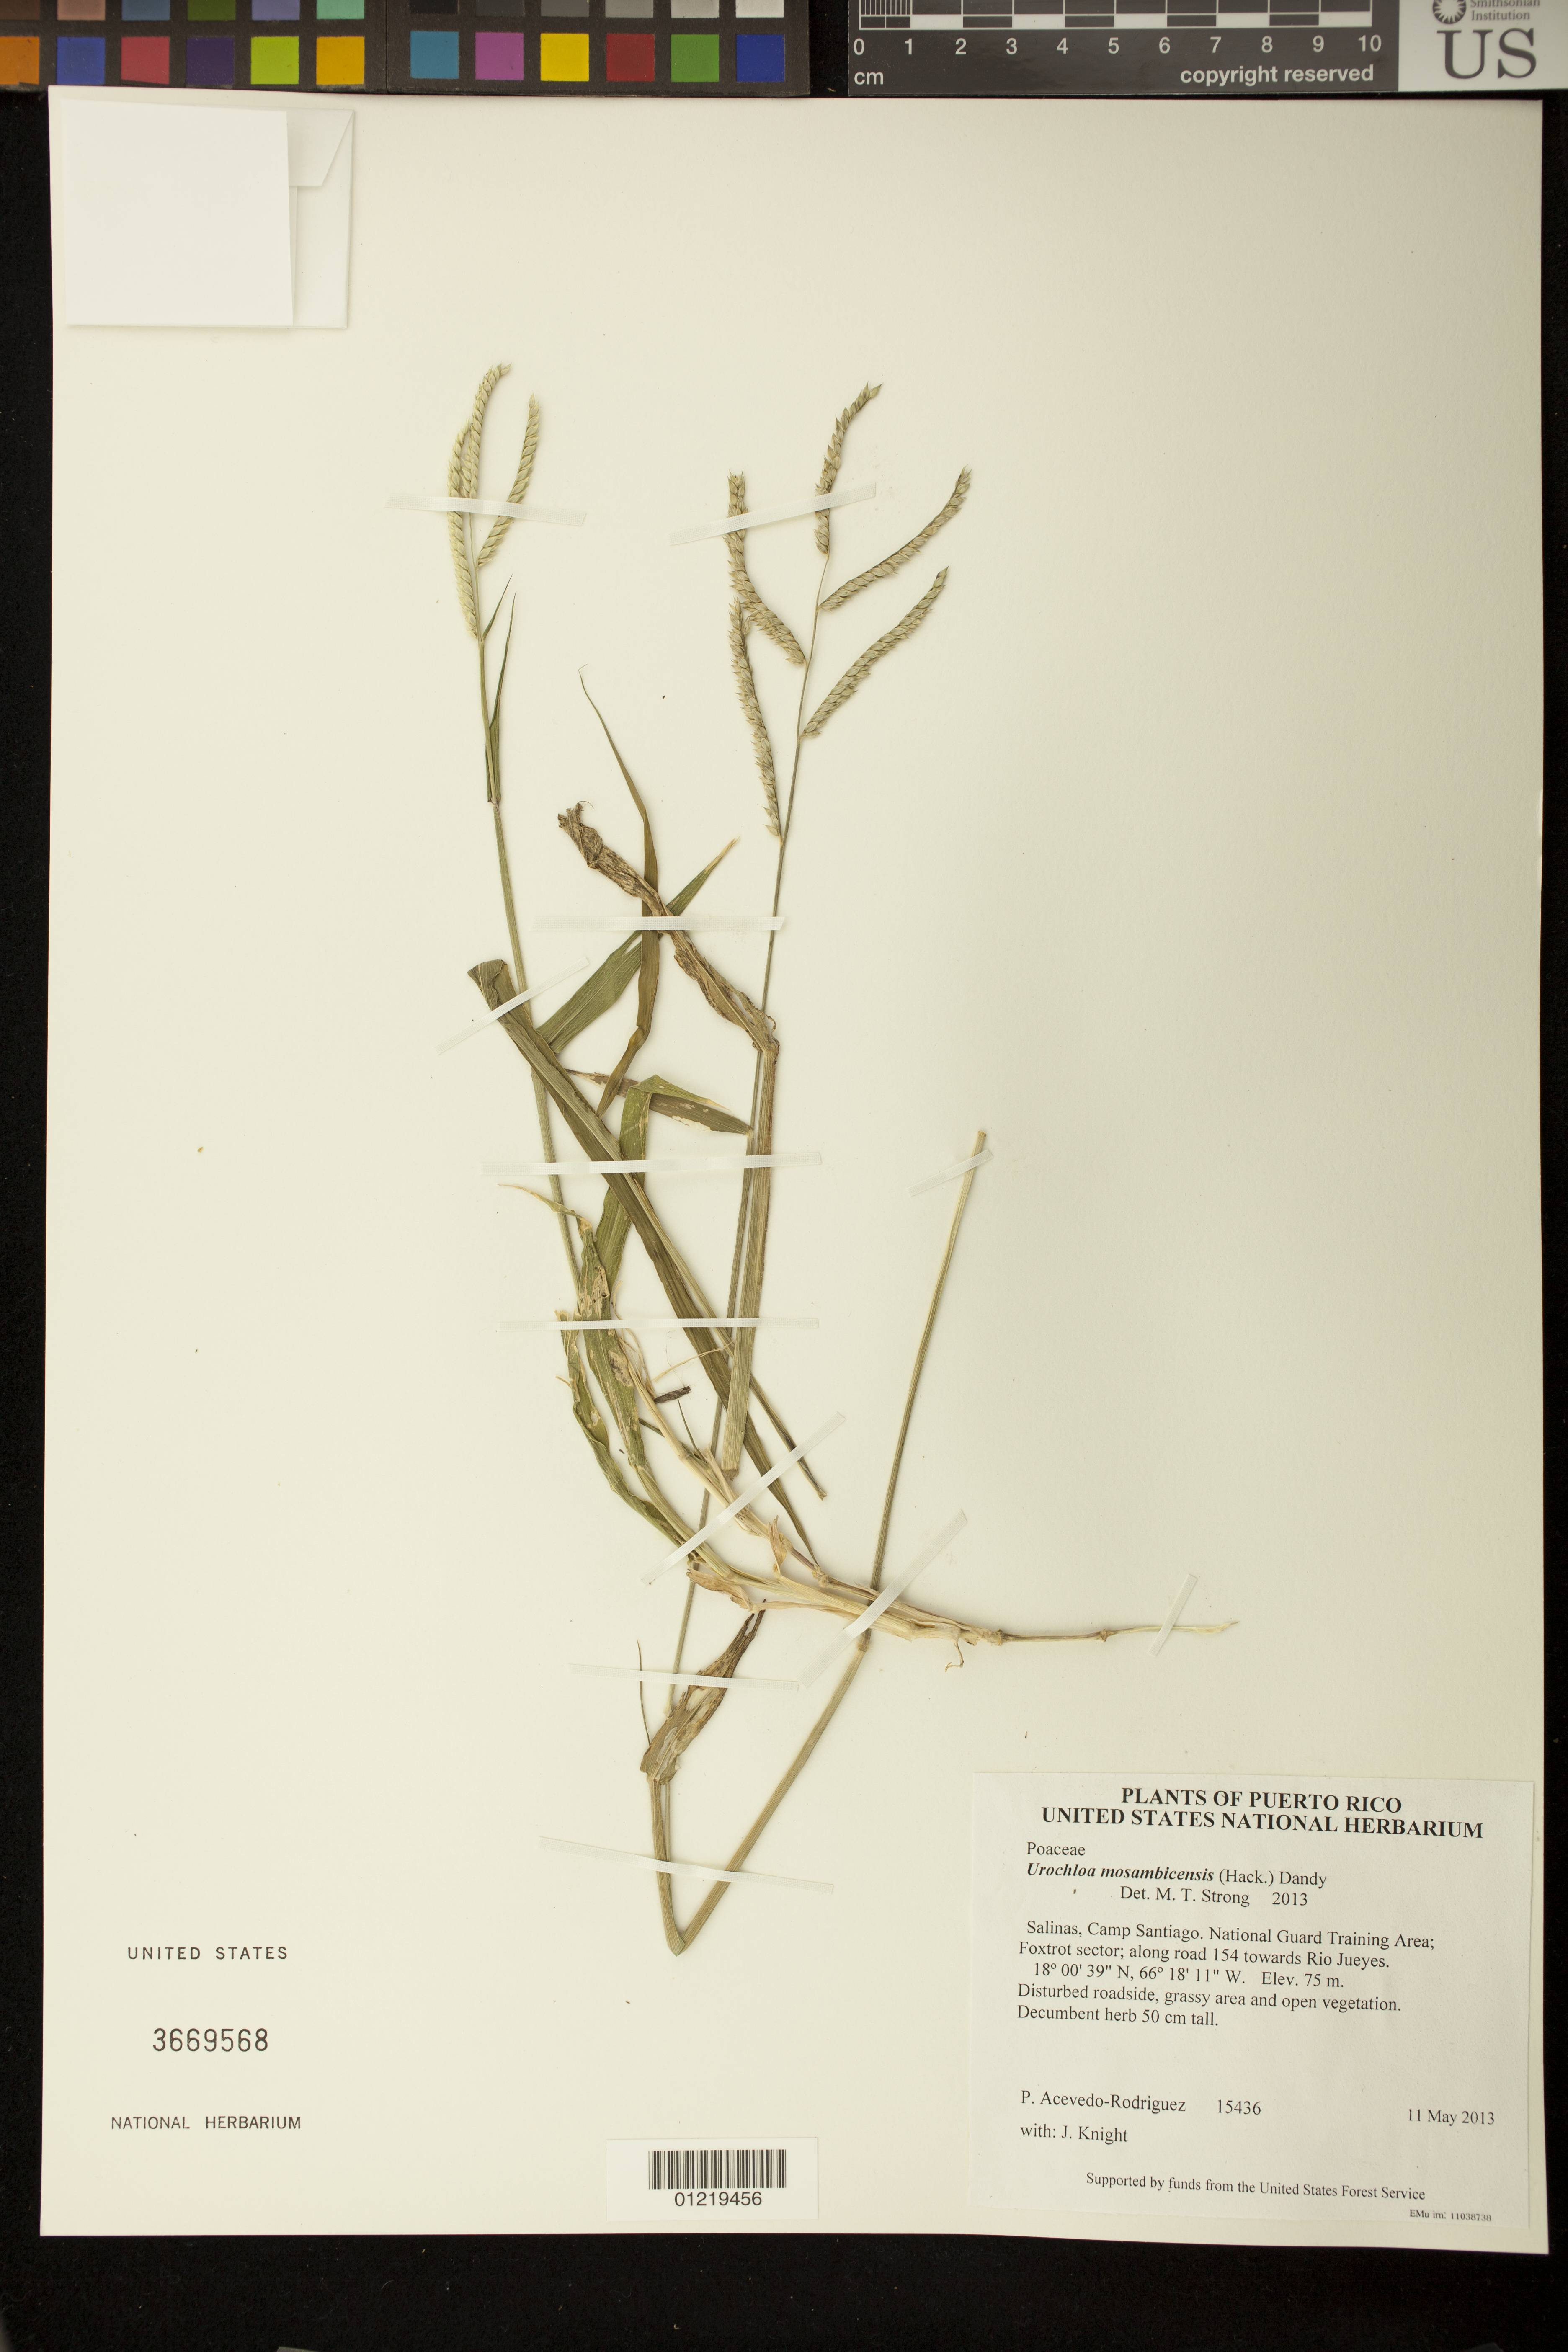 Image of African liverseed grass